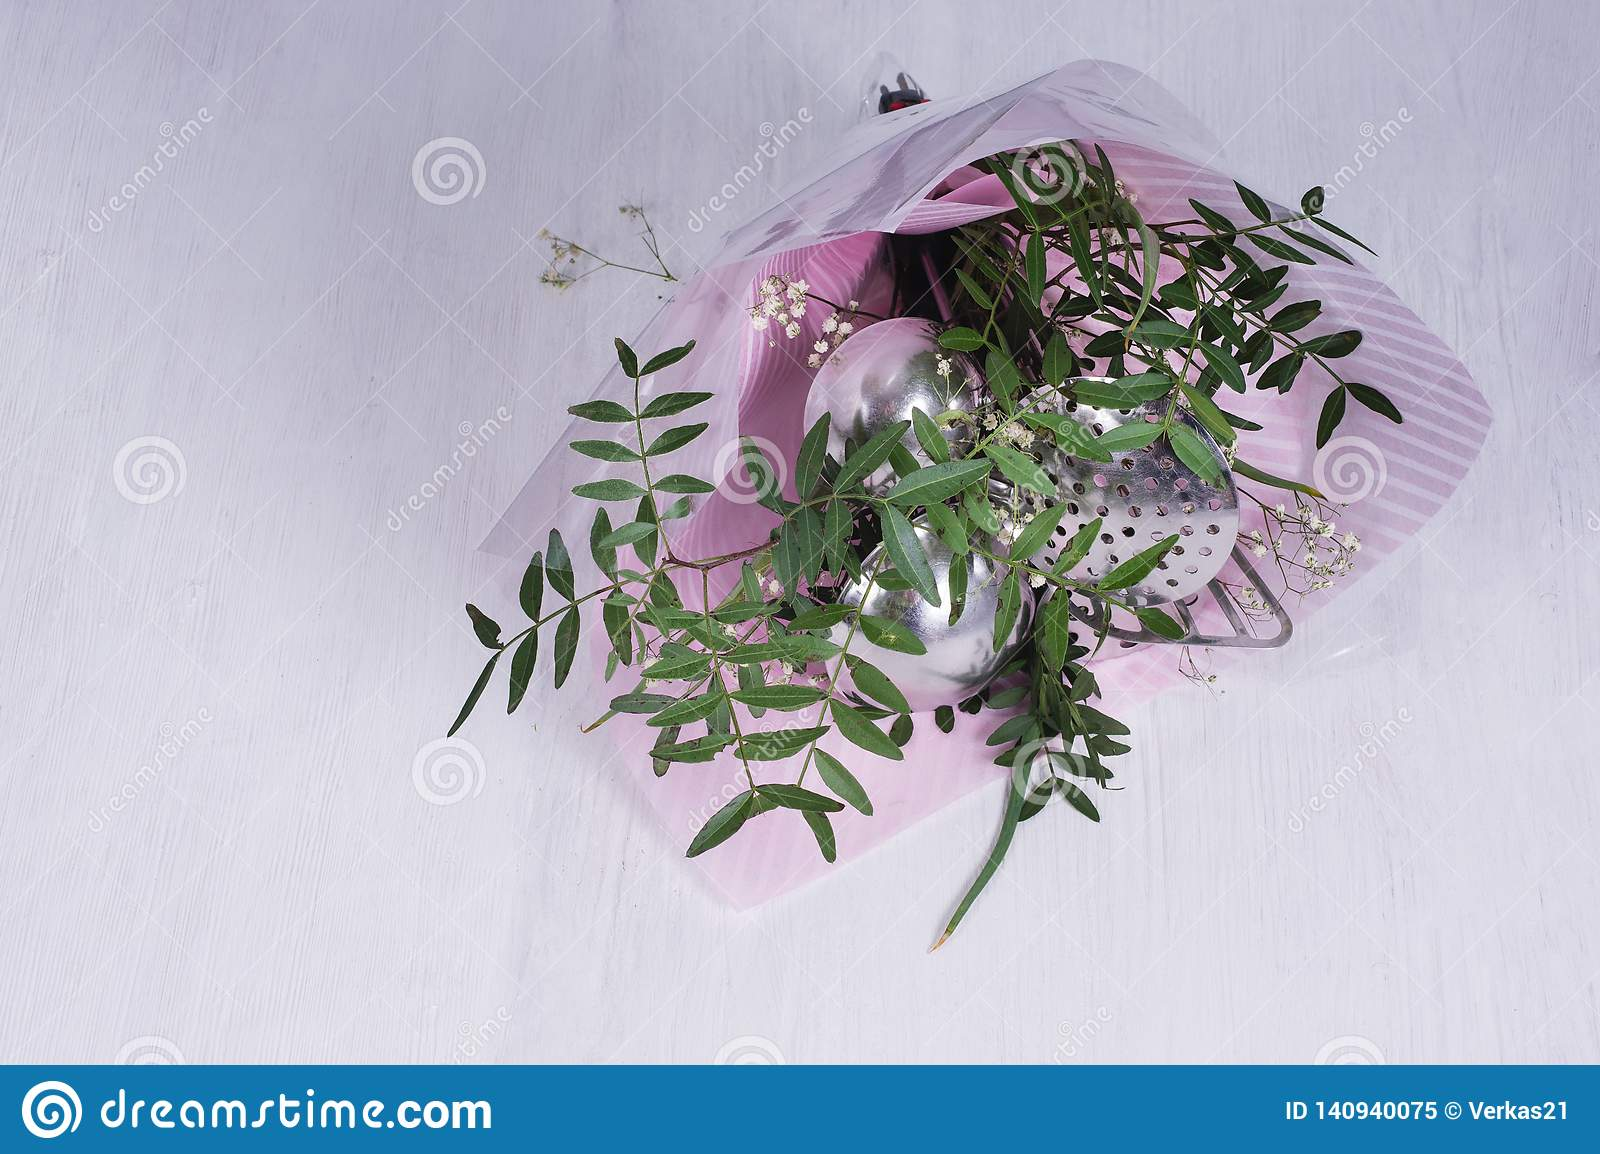 Bouquet of leaves and kitchen utensils. Set of gift-wrapped tools. concept of sexism and feminism, patriarchal society and gender